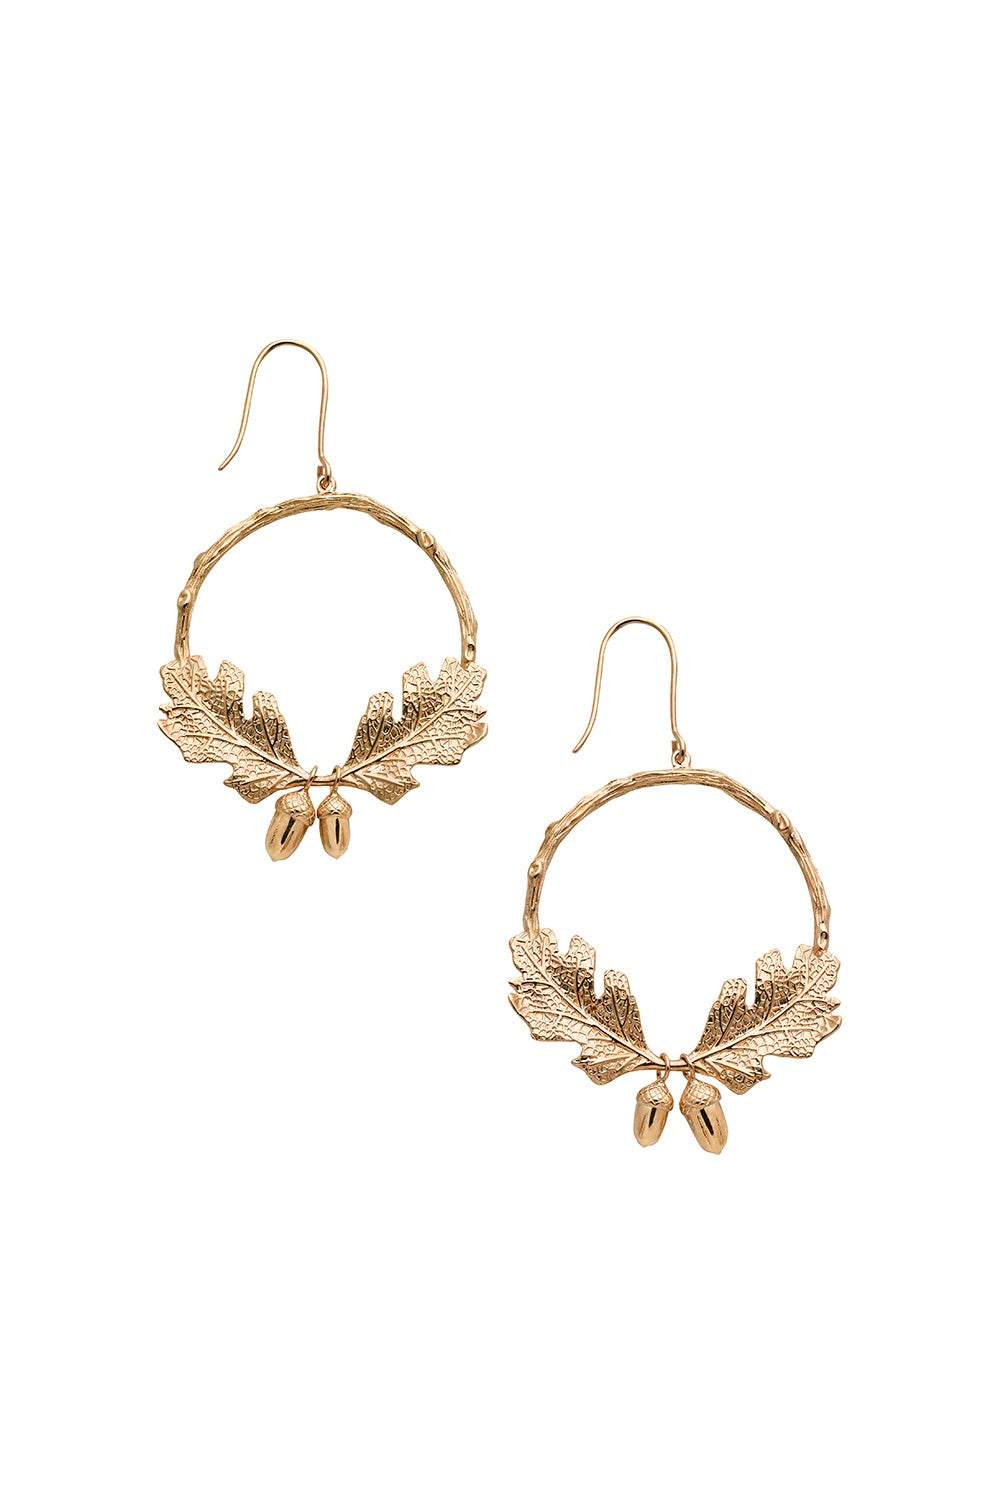 Acorn and Leaf Wreath Earrings Gold-Plated